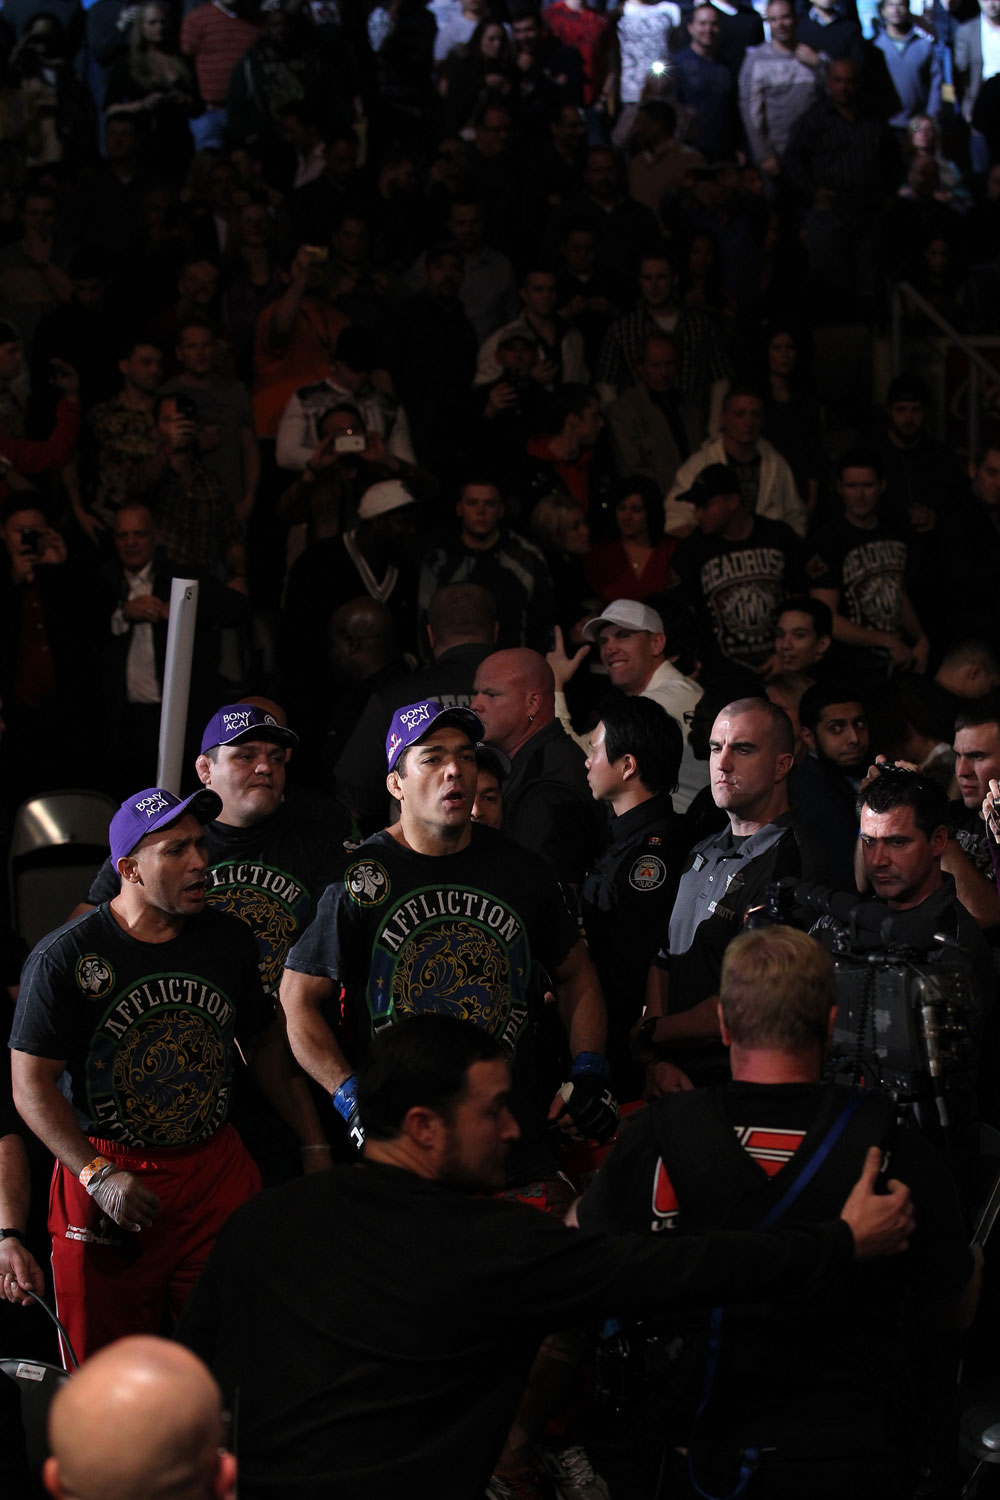 TORONTO, ON - DECEMBER 10:  Lyoto Machida enters the arena before his bout against Jon Jones during the UFC 140 event at Air Canada Centre on December 10, 2011 in Toronto, Ontario, Canada.  (Photo by Nick Laham/Zuffa LLC/Zuffa LLC via Getty Images)